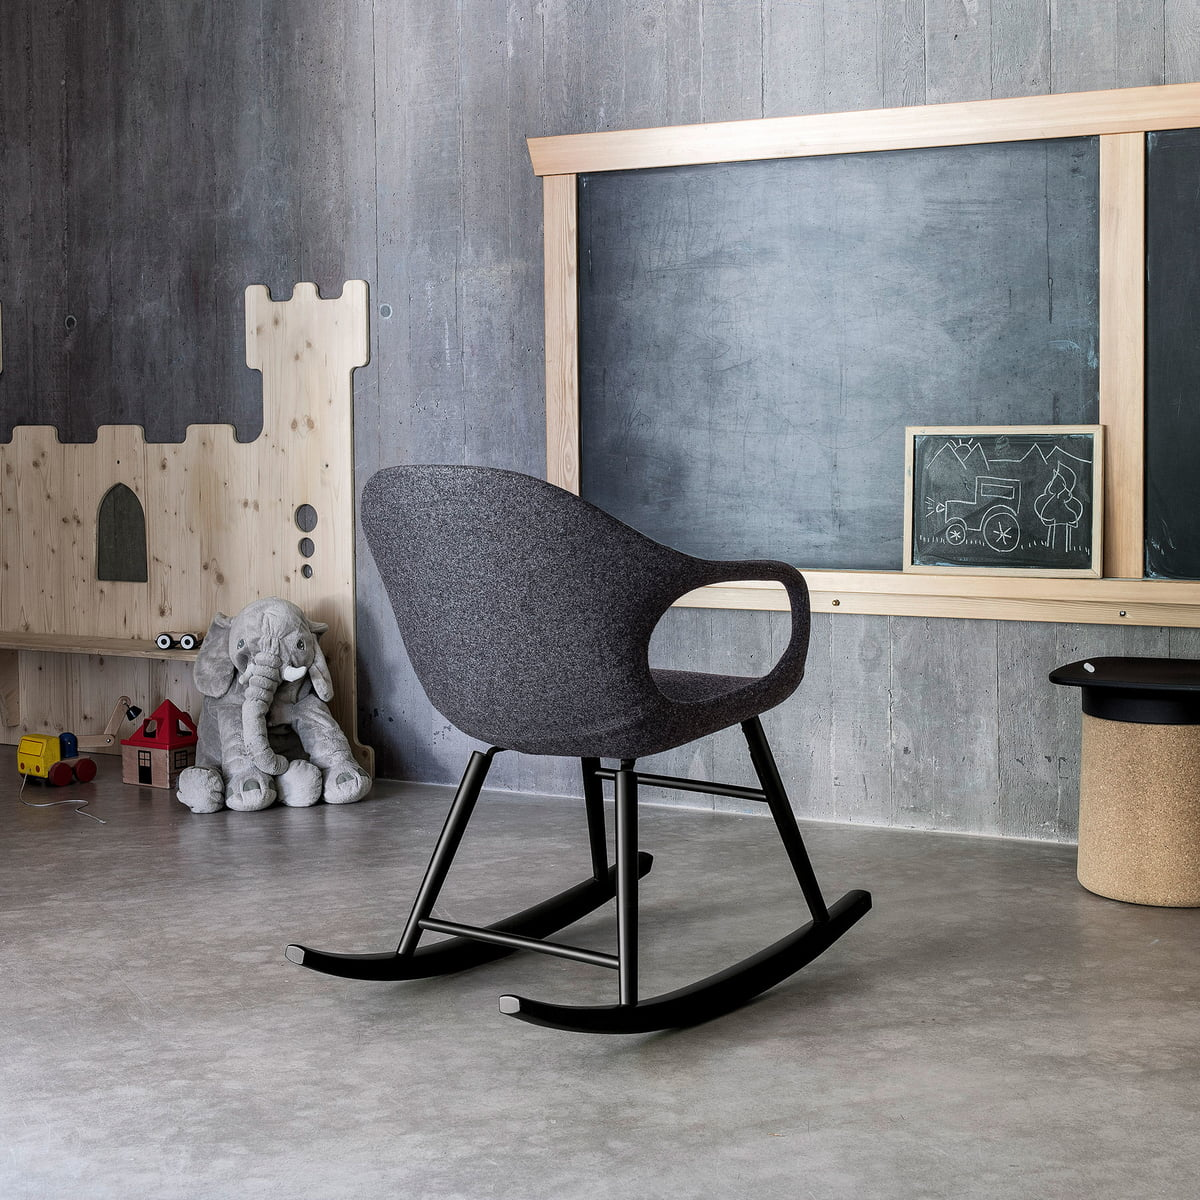 for thenurseries leather chair ikea rocking gallery black nursery